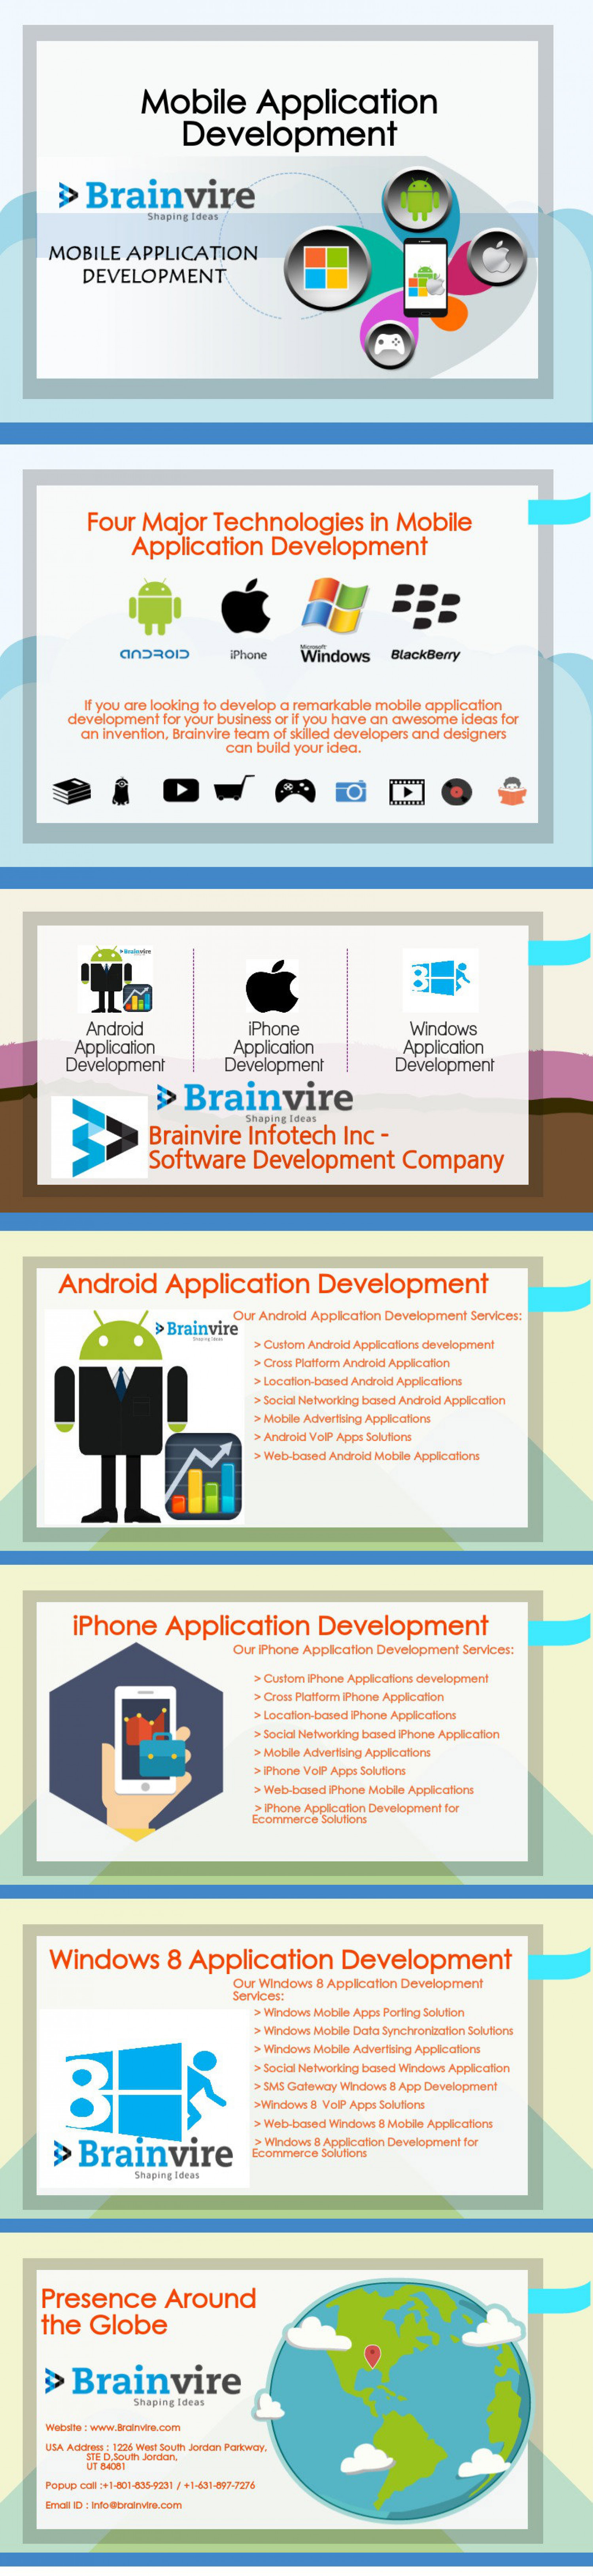 Mobile Application Development - Brainvire Infographic